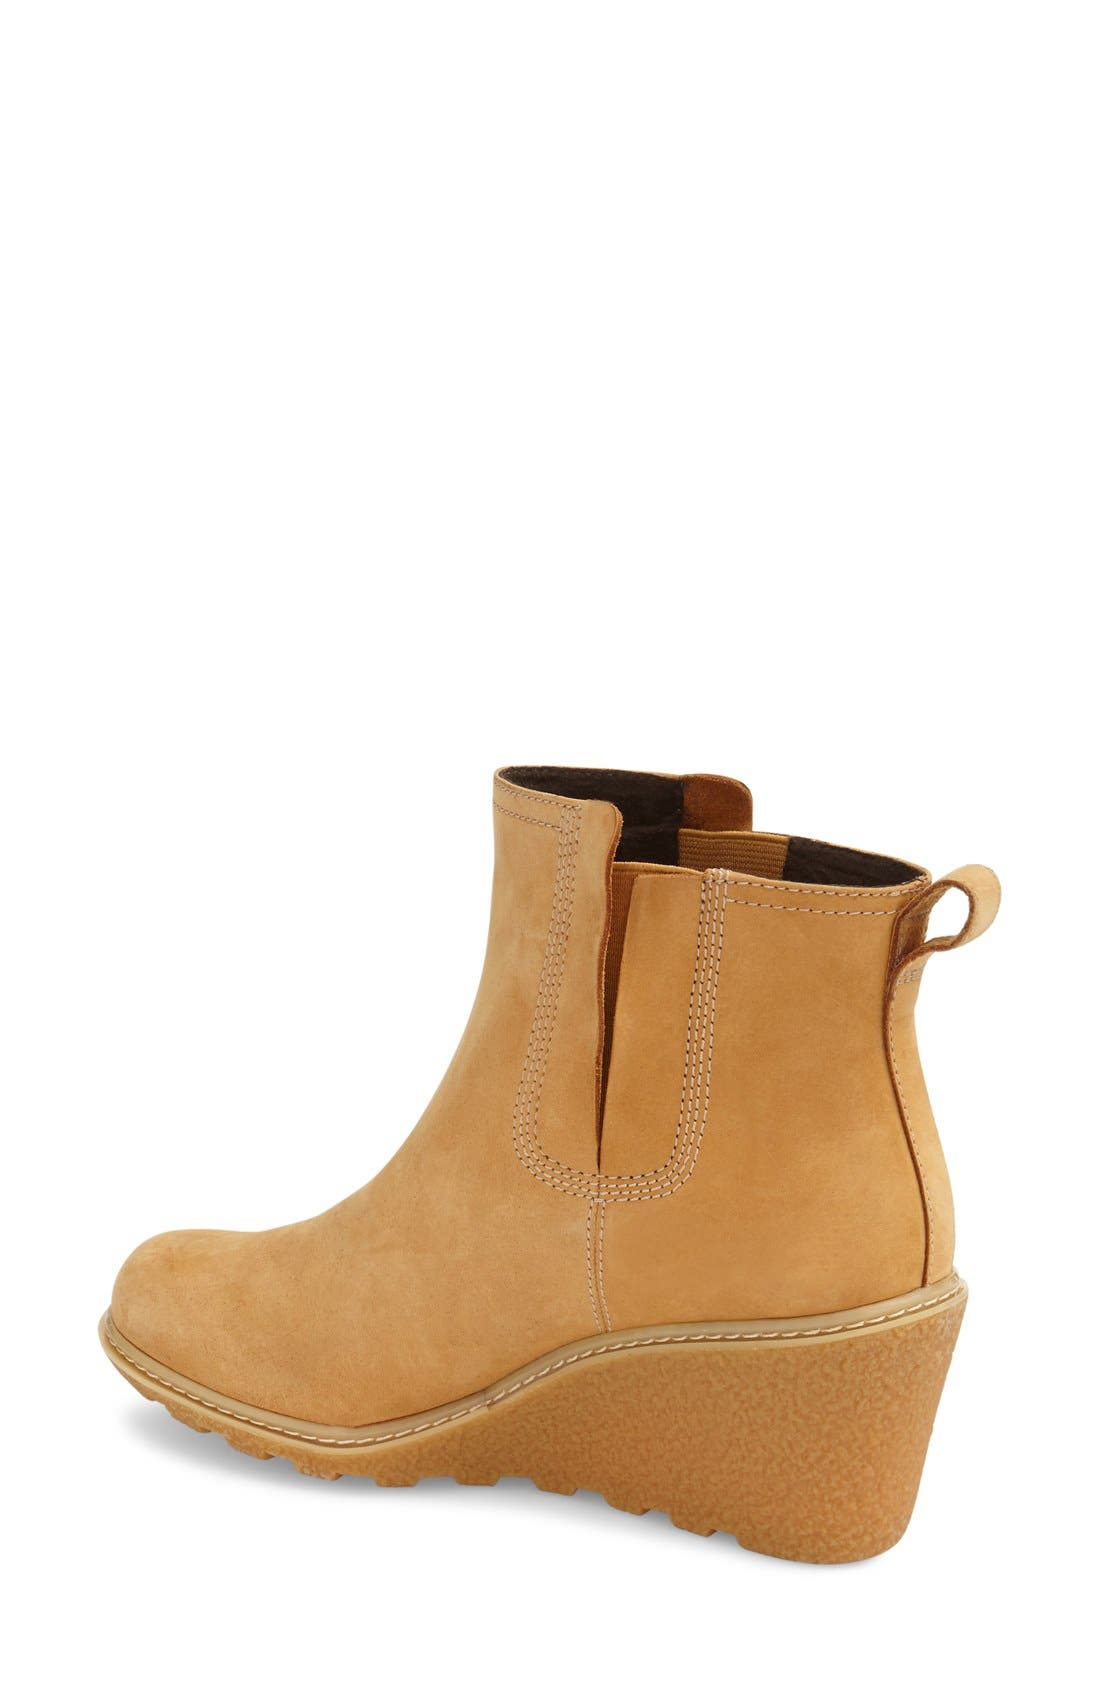 'Amston' Chelsea Wedge Boot,                             Alternate thumbnail 2, color,                             Wheat Nubuck Leather